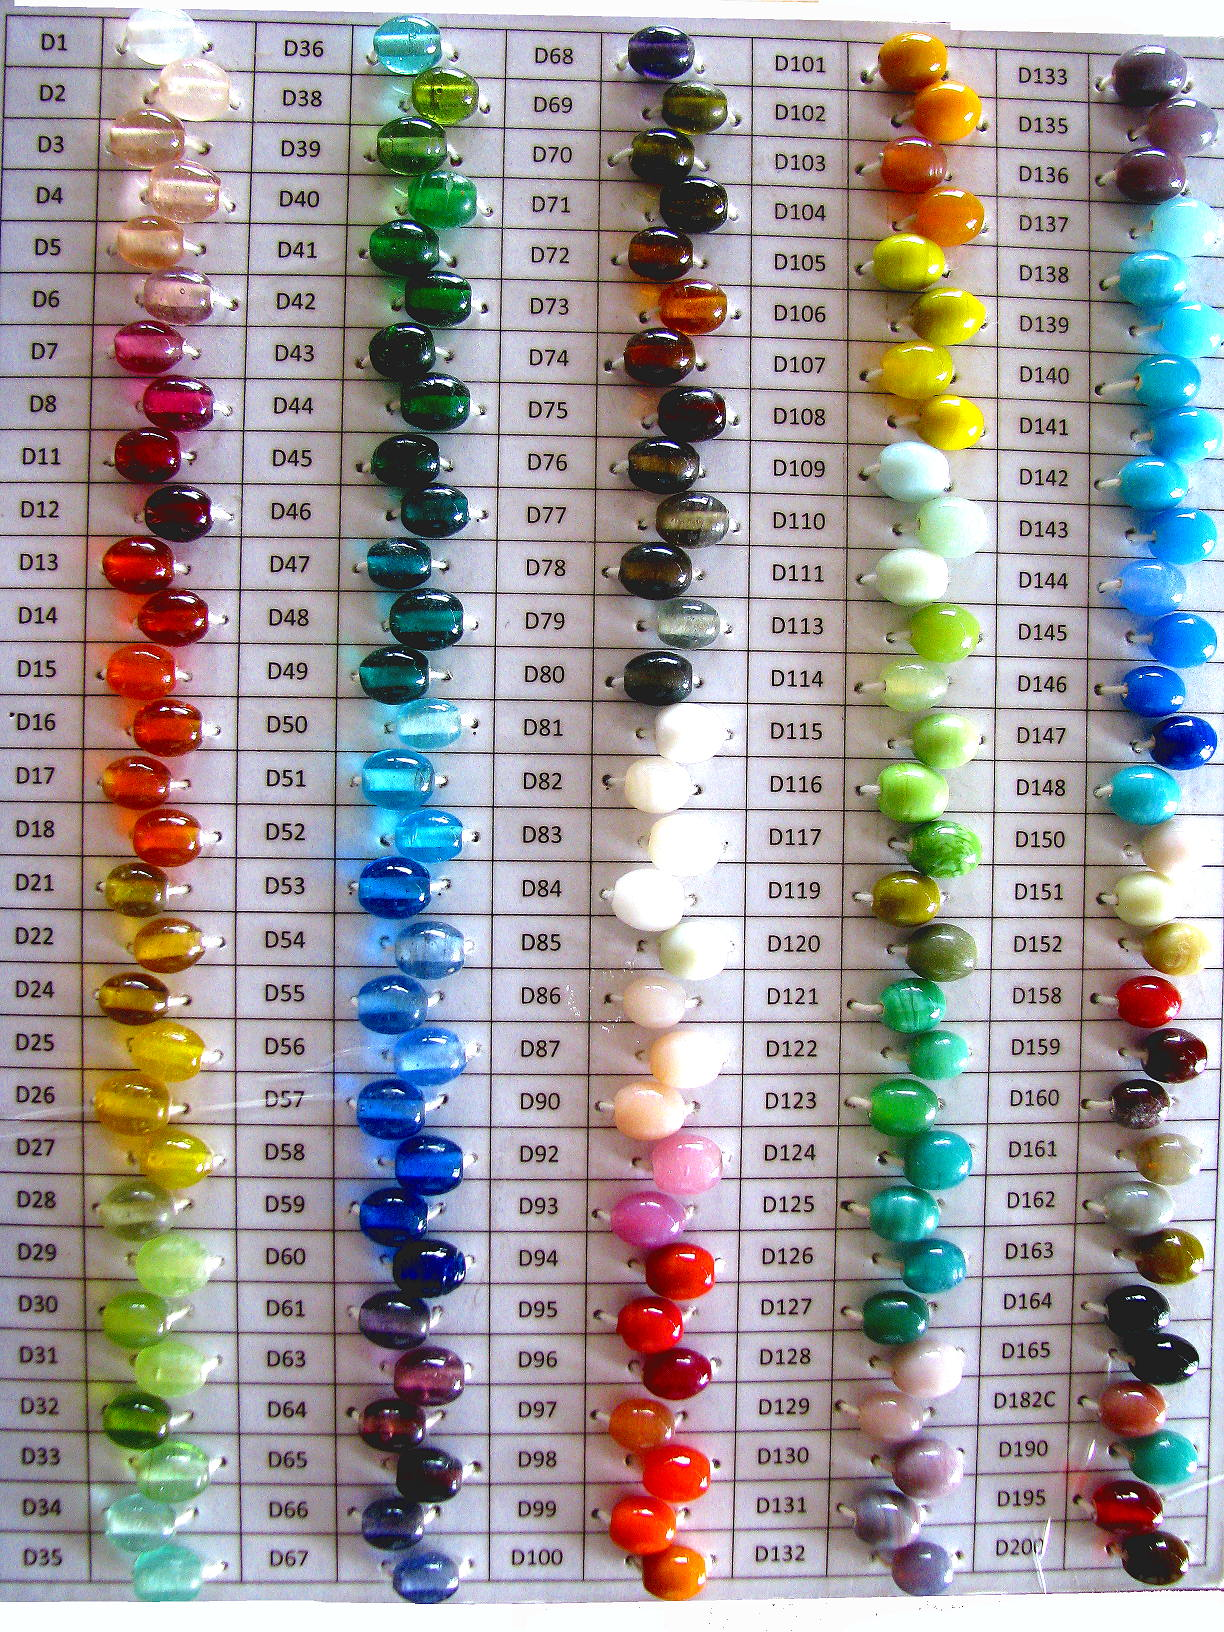 Devardi glass rods lampworking color chart you can save the picture zoom in for reference or print nvjuhfo Gallery